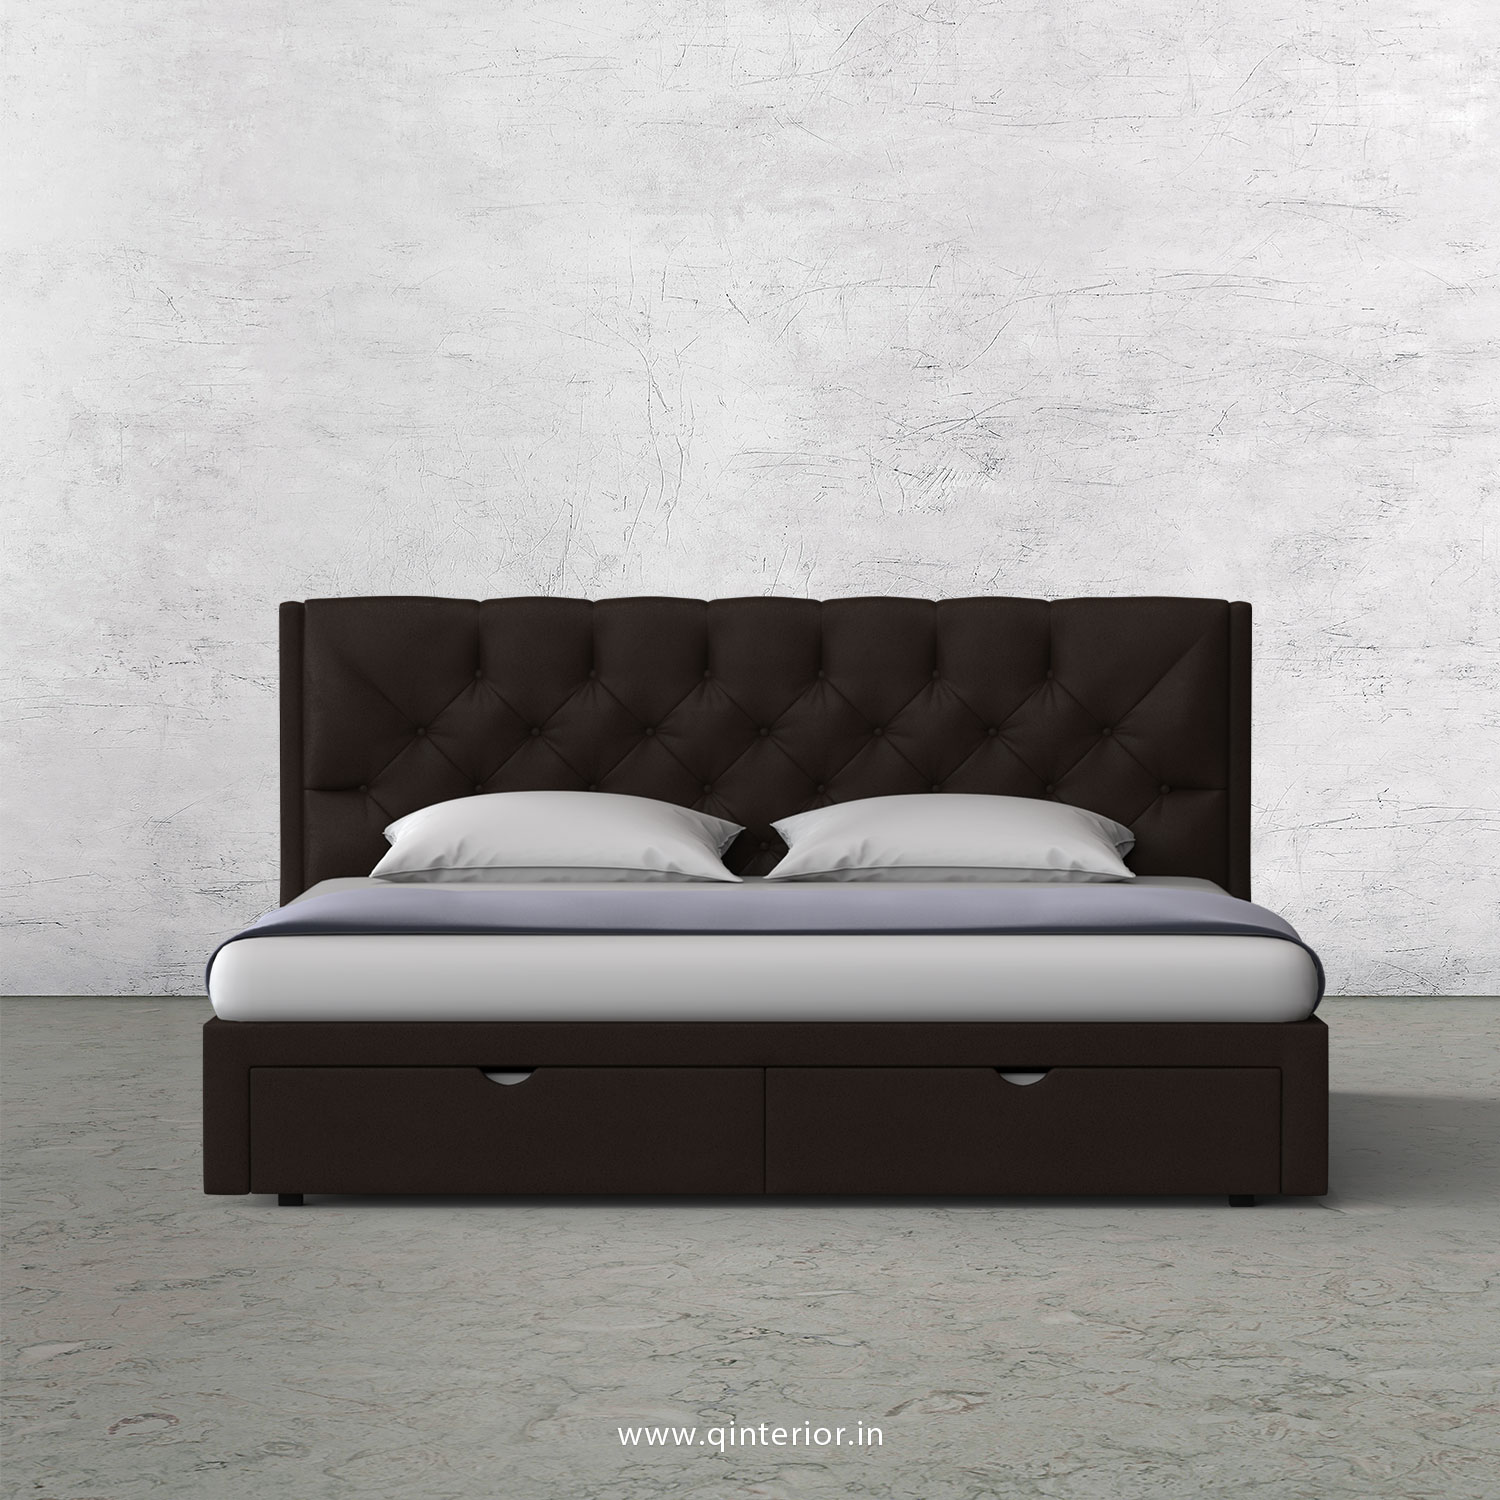 Scorpius King Size Storage Bed in Fab Leather Fabric - KBD001 FL16